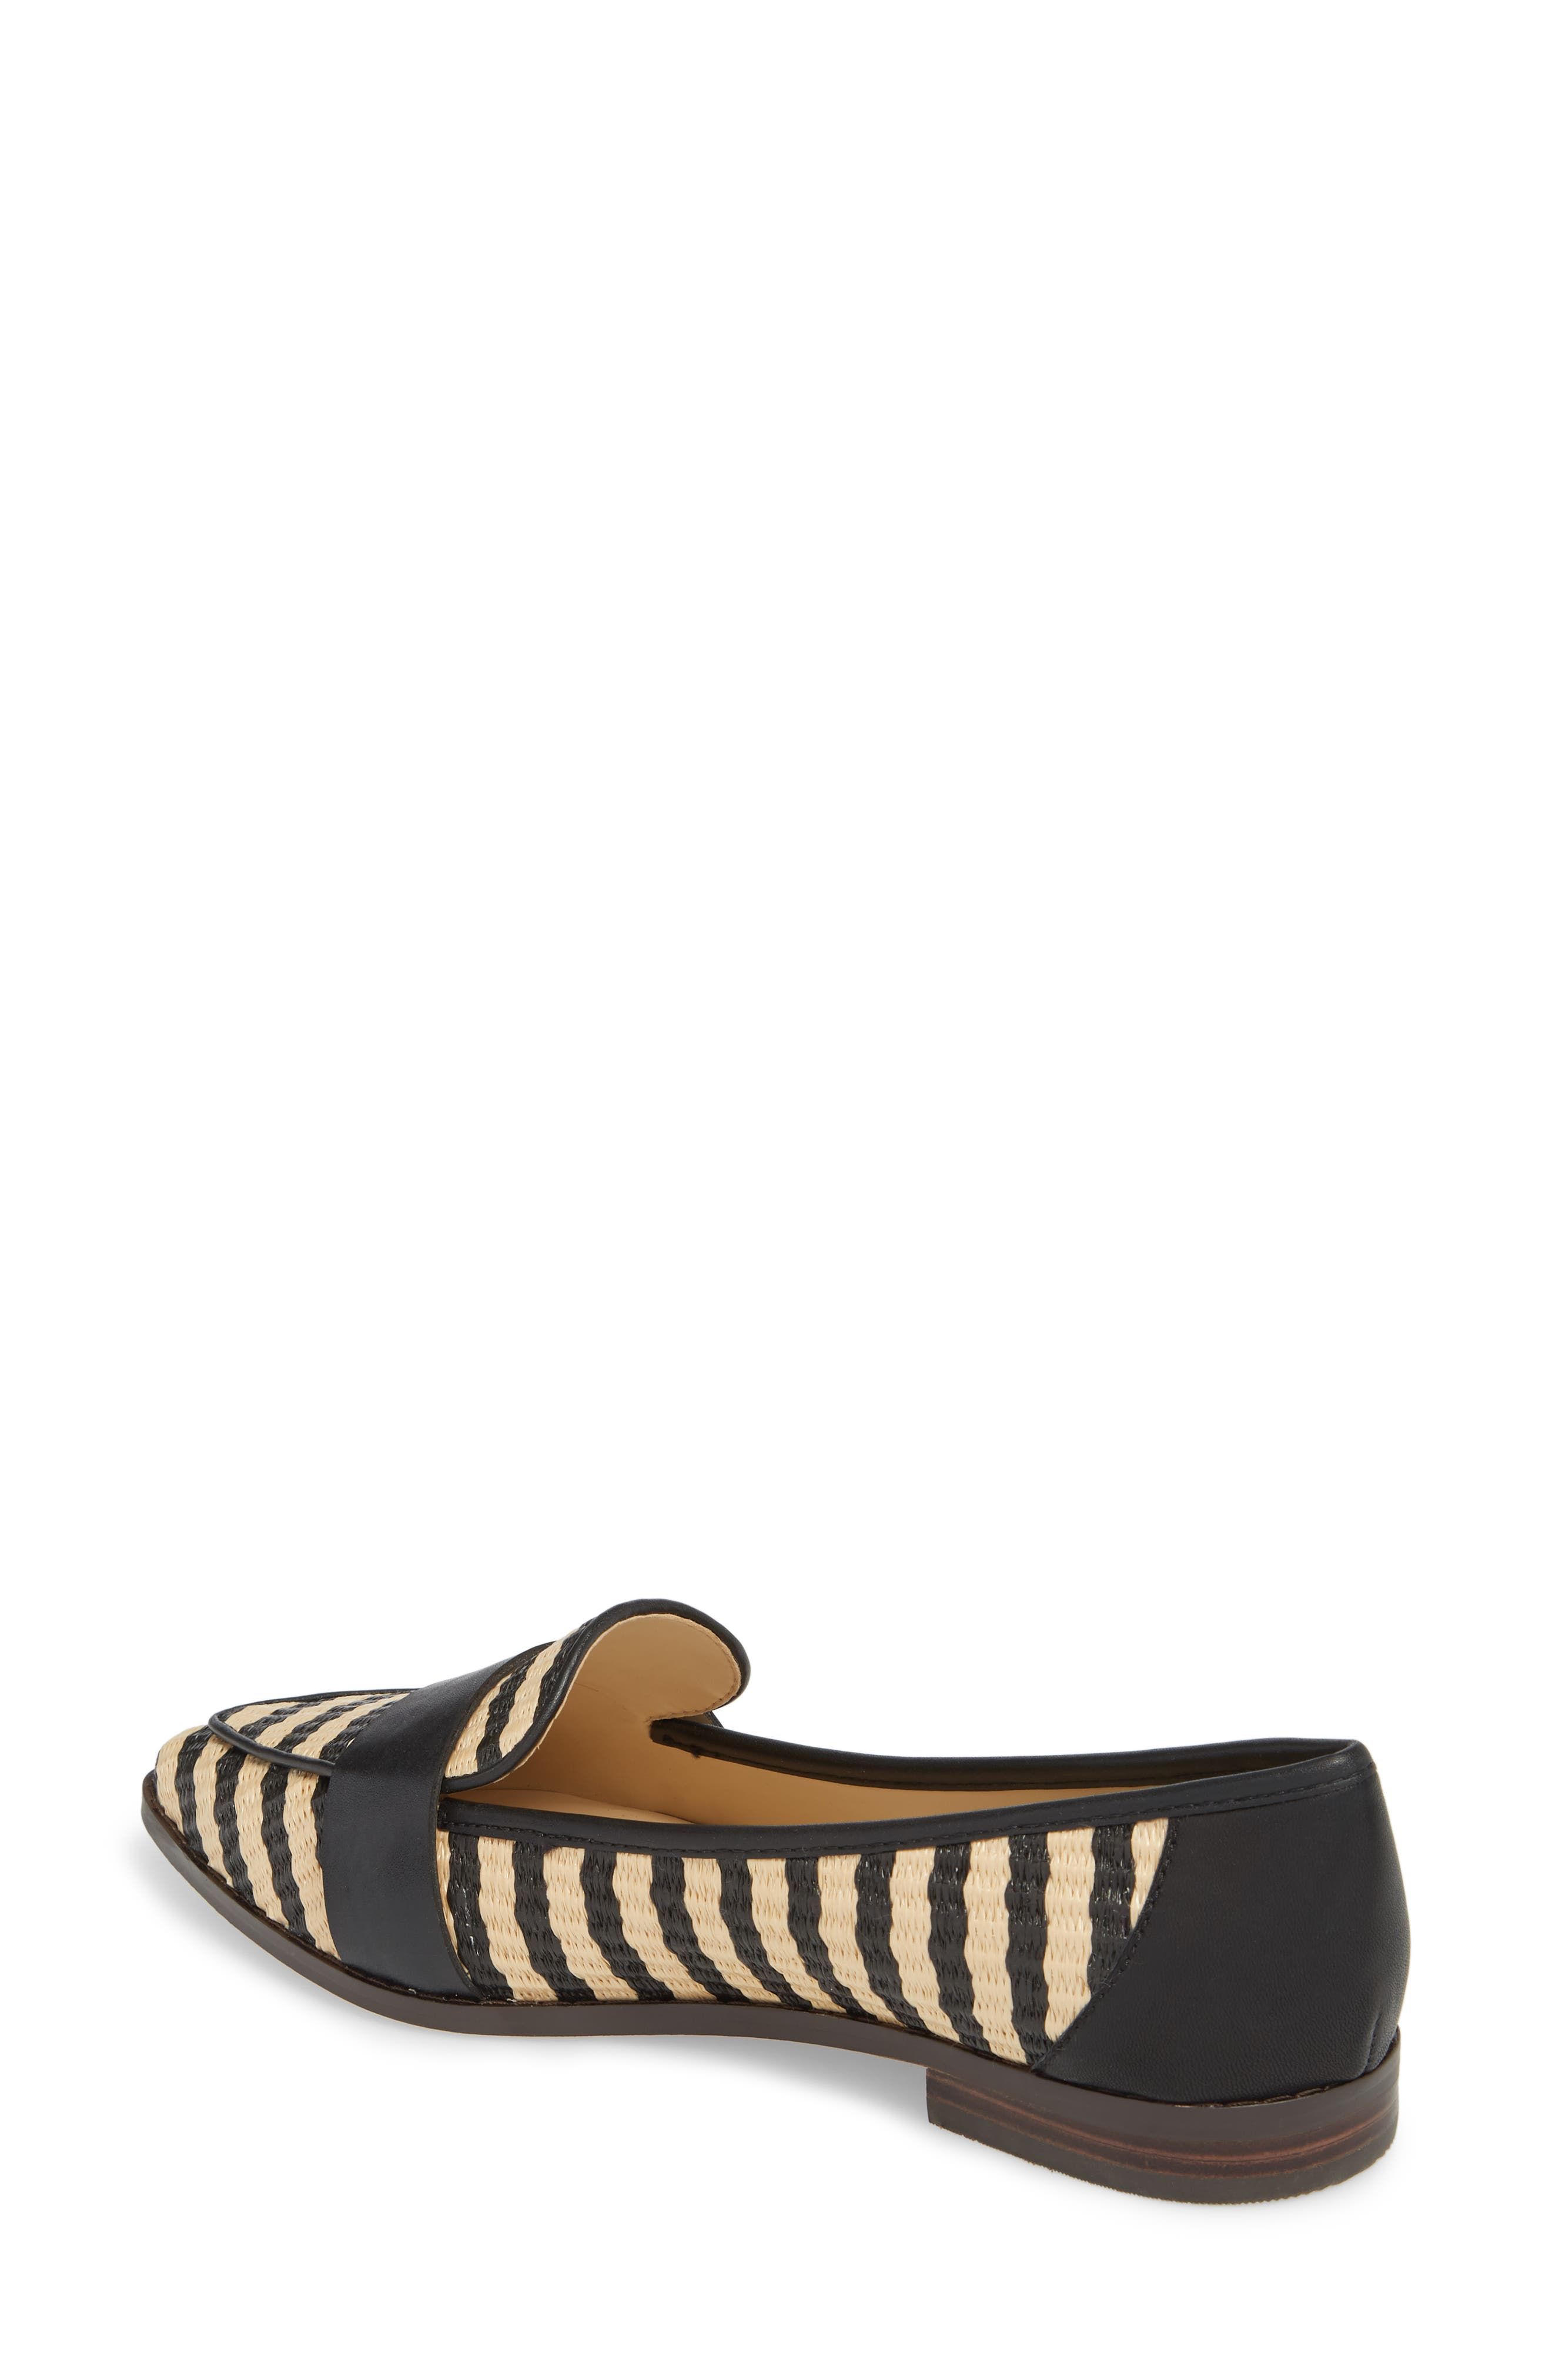 SOLE SOCIETY,                             Edie Loafer,                             Alternate thumbnail 2, color,                             NATURAL/ BLACK